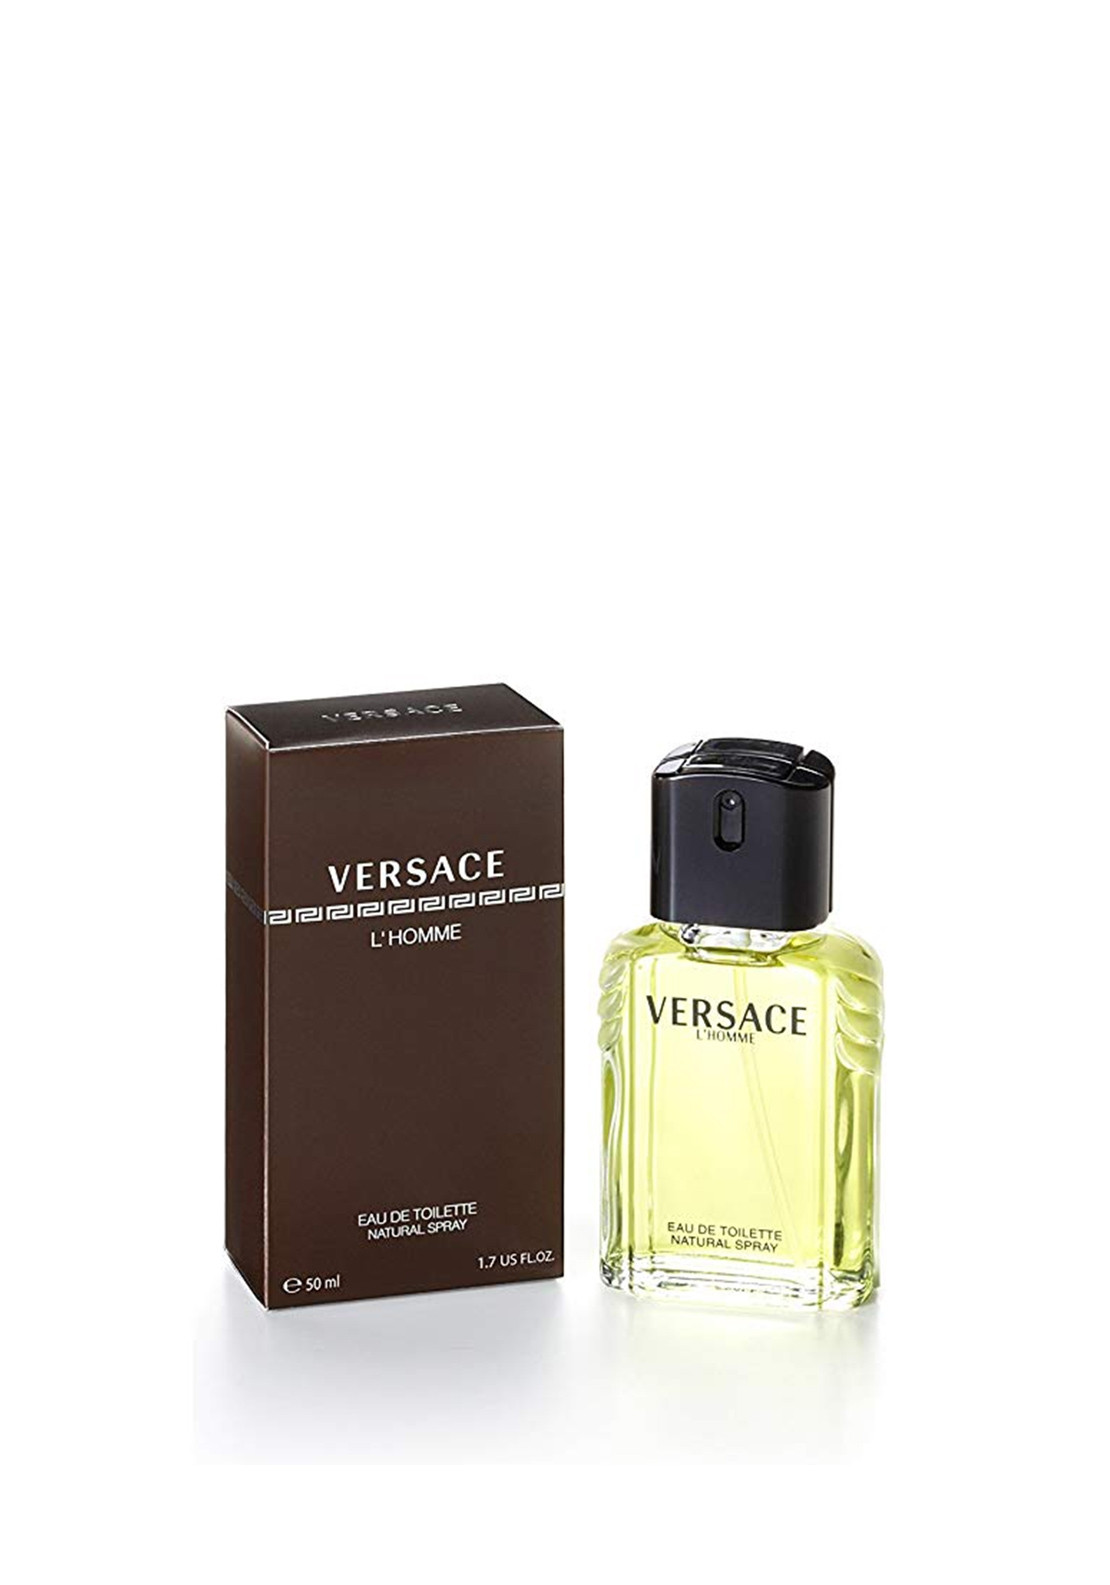 b84f8b29331 Versace L Homme Eau De Toilette 50ml. Be the first to review this product